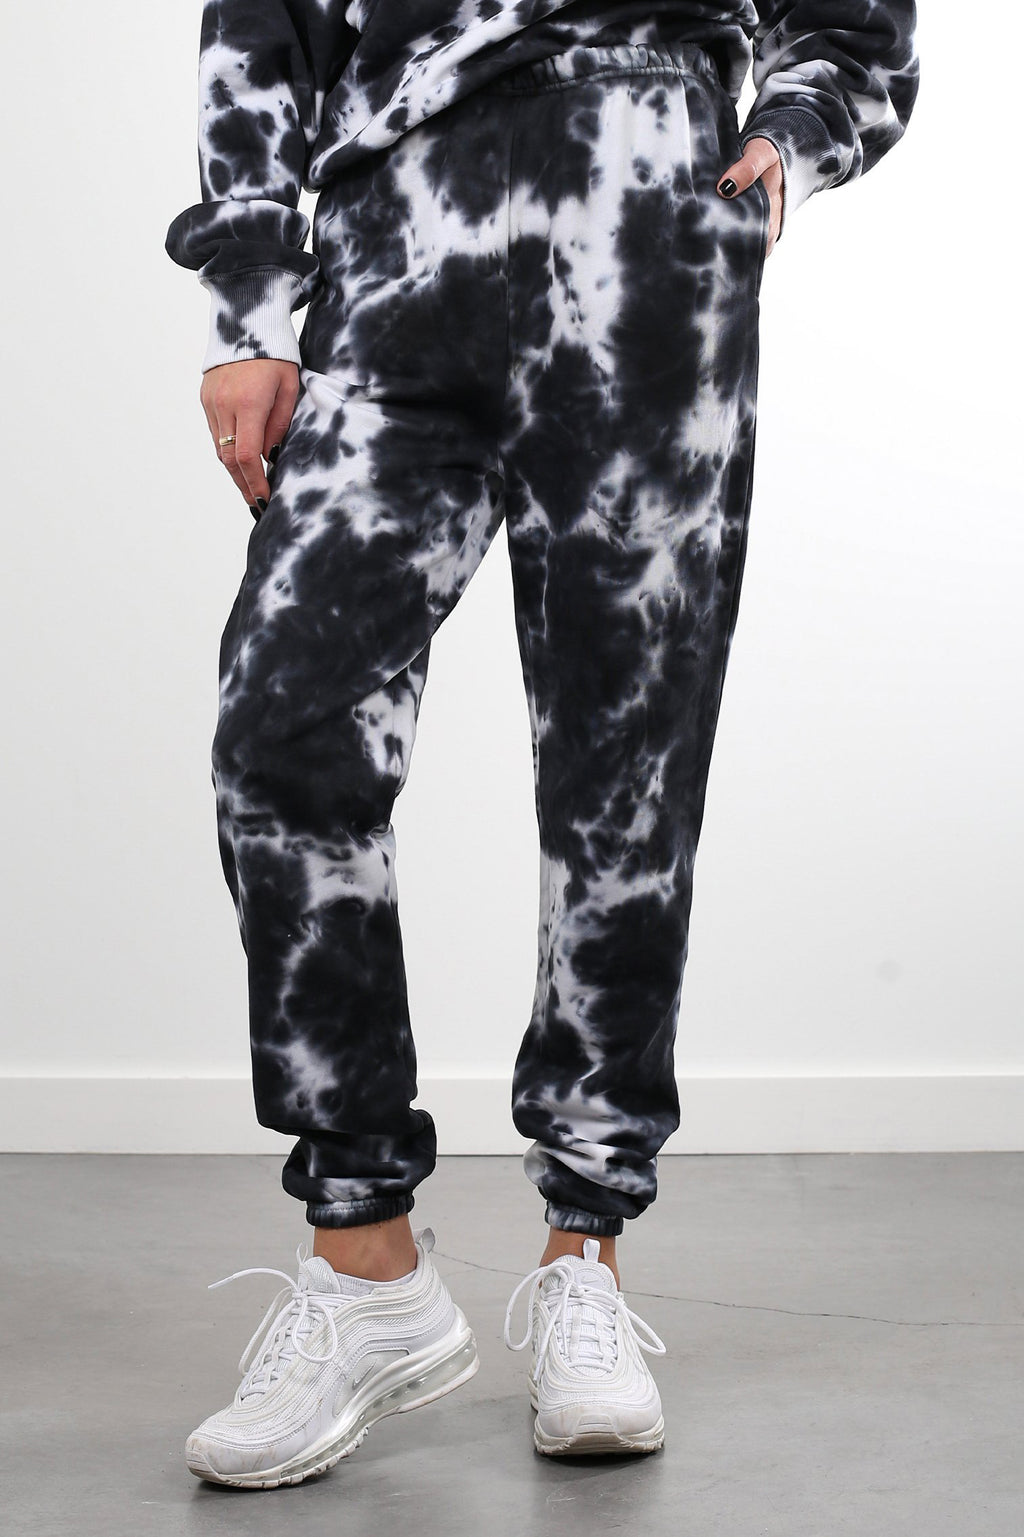 Marble Tie Dye Best Friend High Rise Joggers